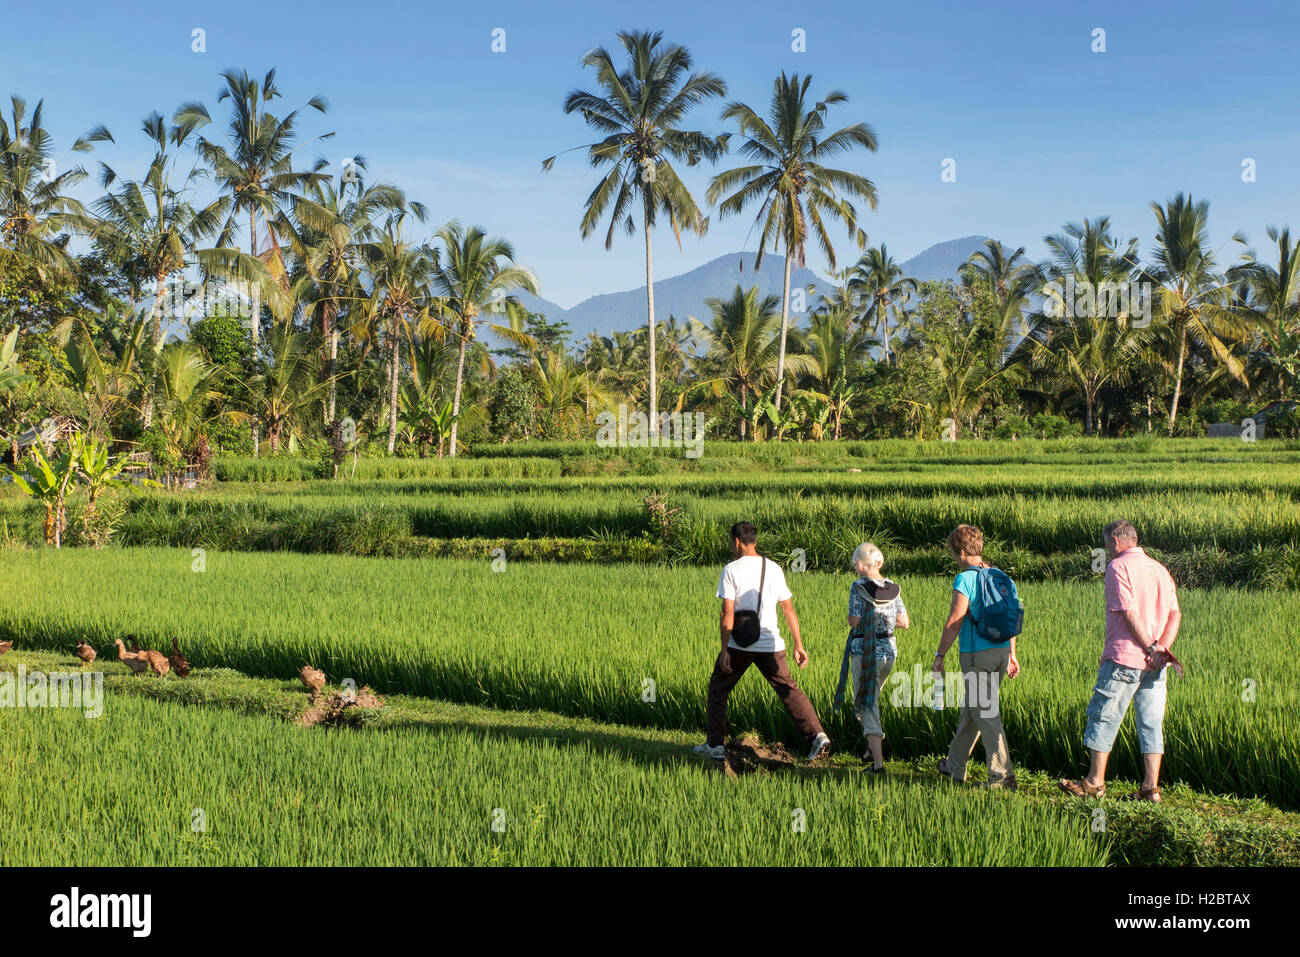 Indonesia, Bali, Payangan, Susut, tourists walking through rice fields with western volcanoes in distance - Stock Image